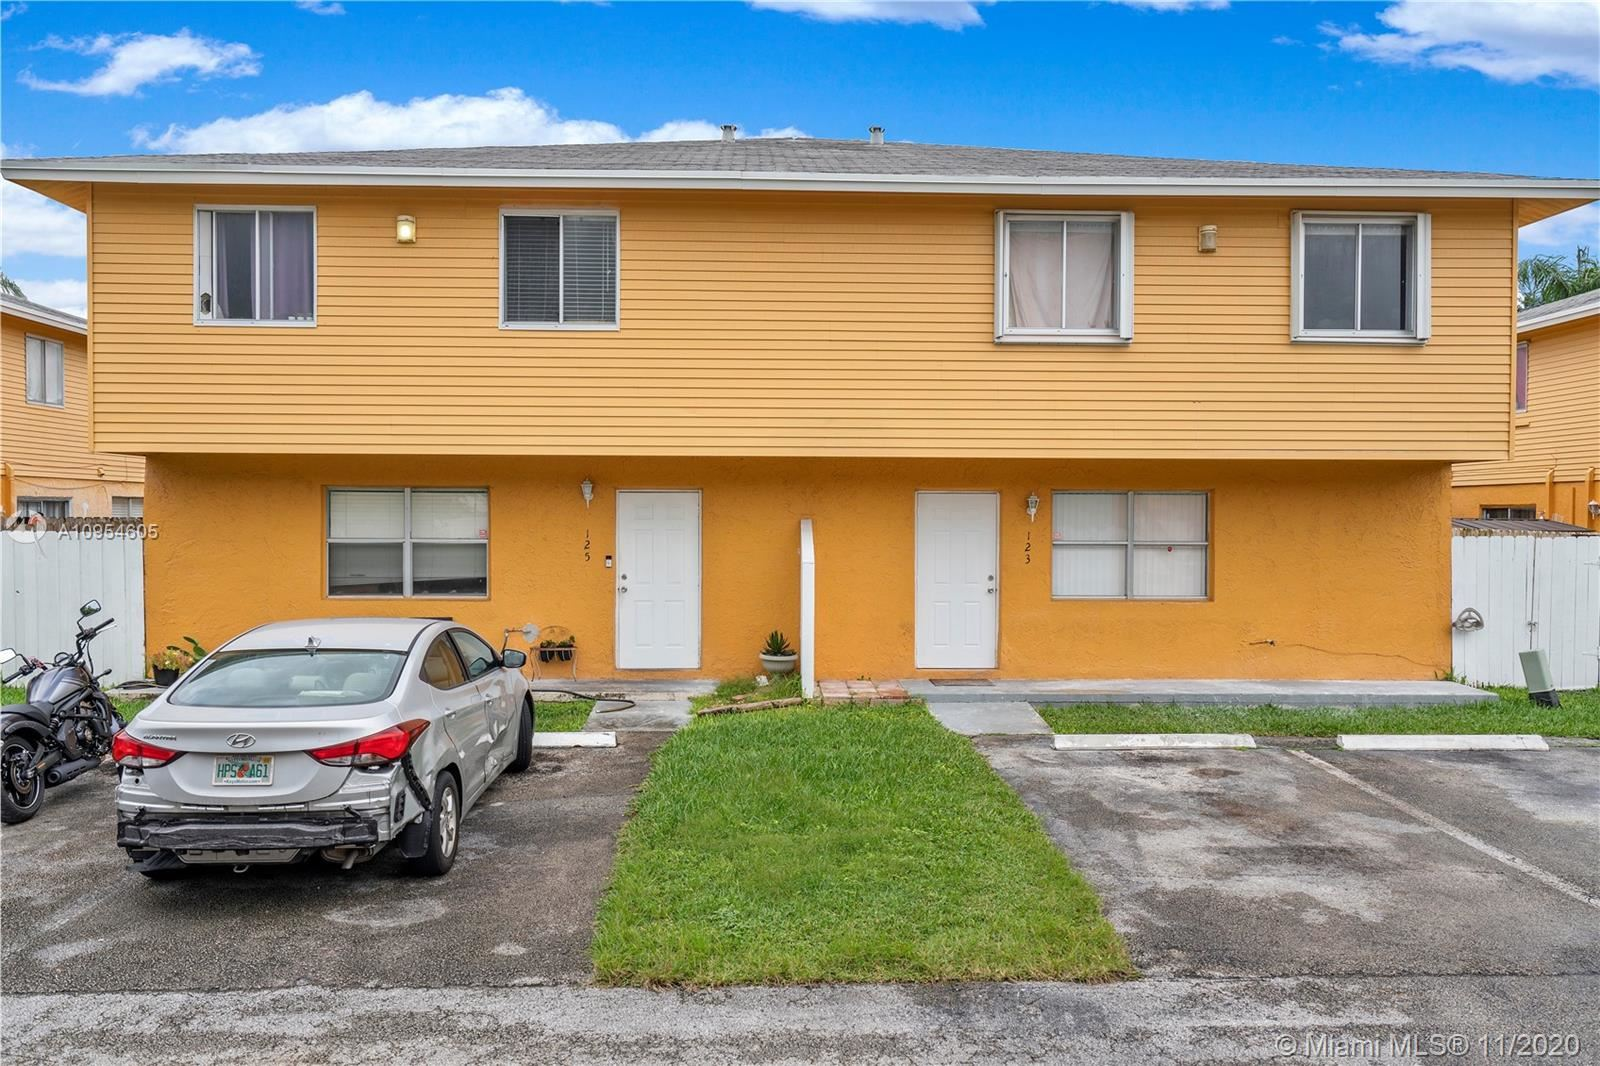 123 NE 12th Ave #123, Homestead, FL 33030 - #: A10954605